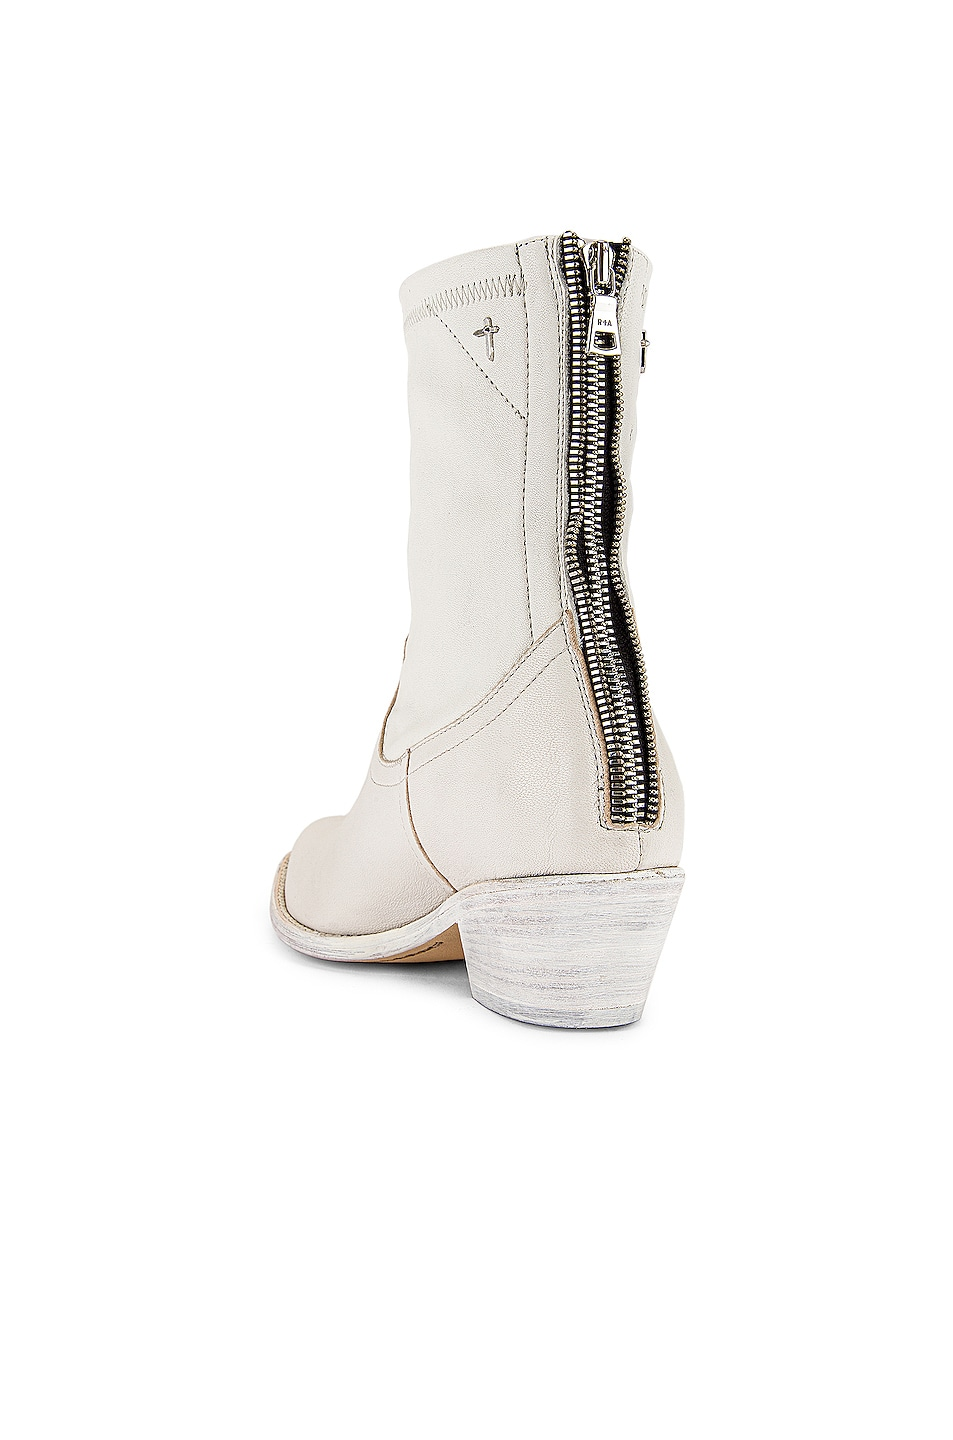 Image 3 of RtA Short Western Boot in White Leather